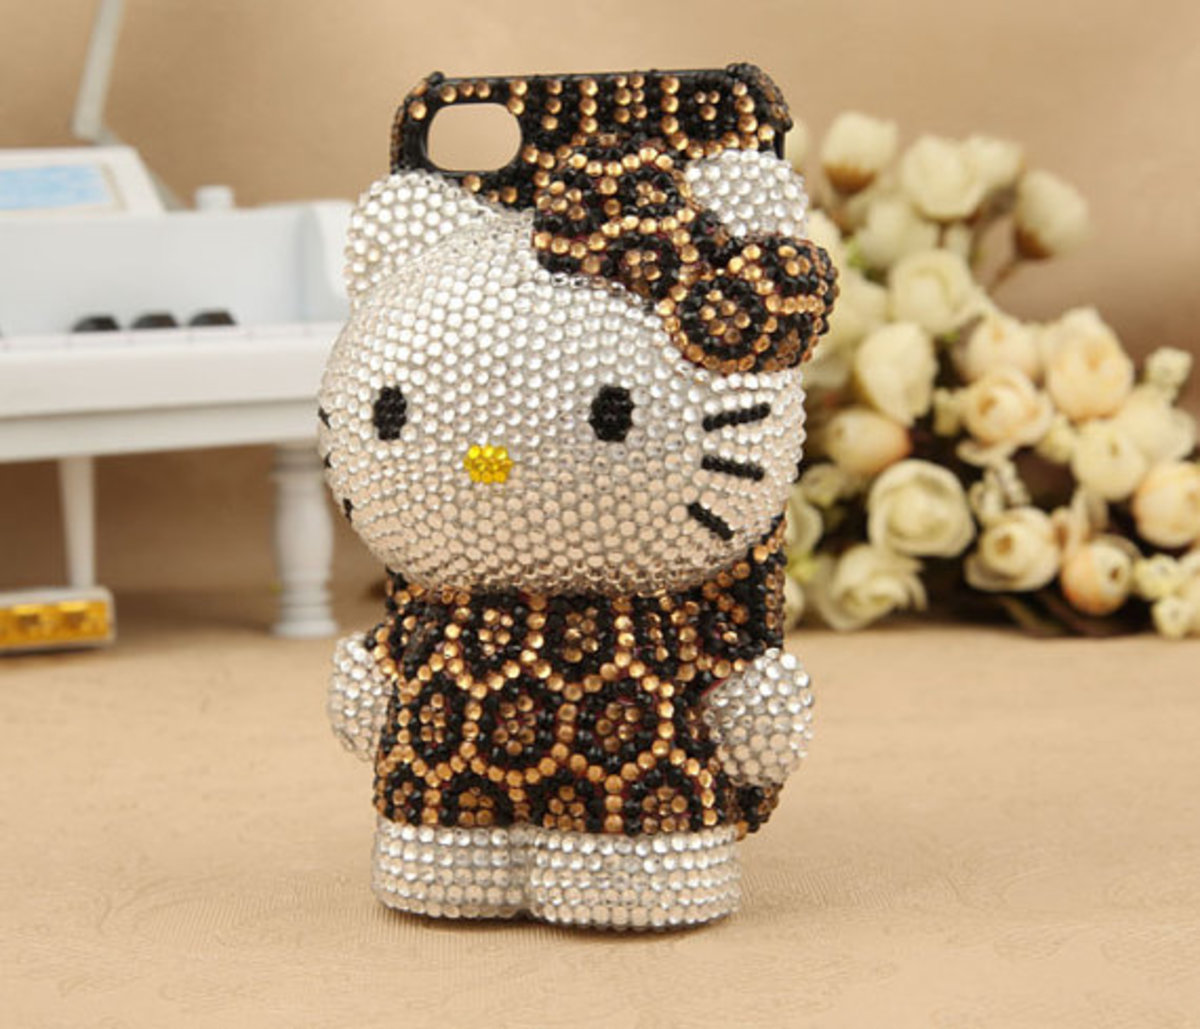 3D Hello Kitty with Leopard Apparel iPhone and iPod Cover